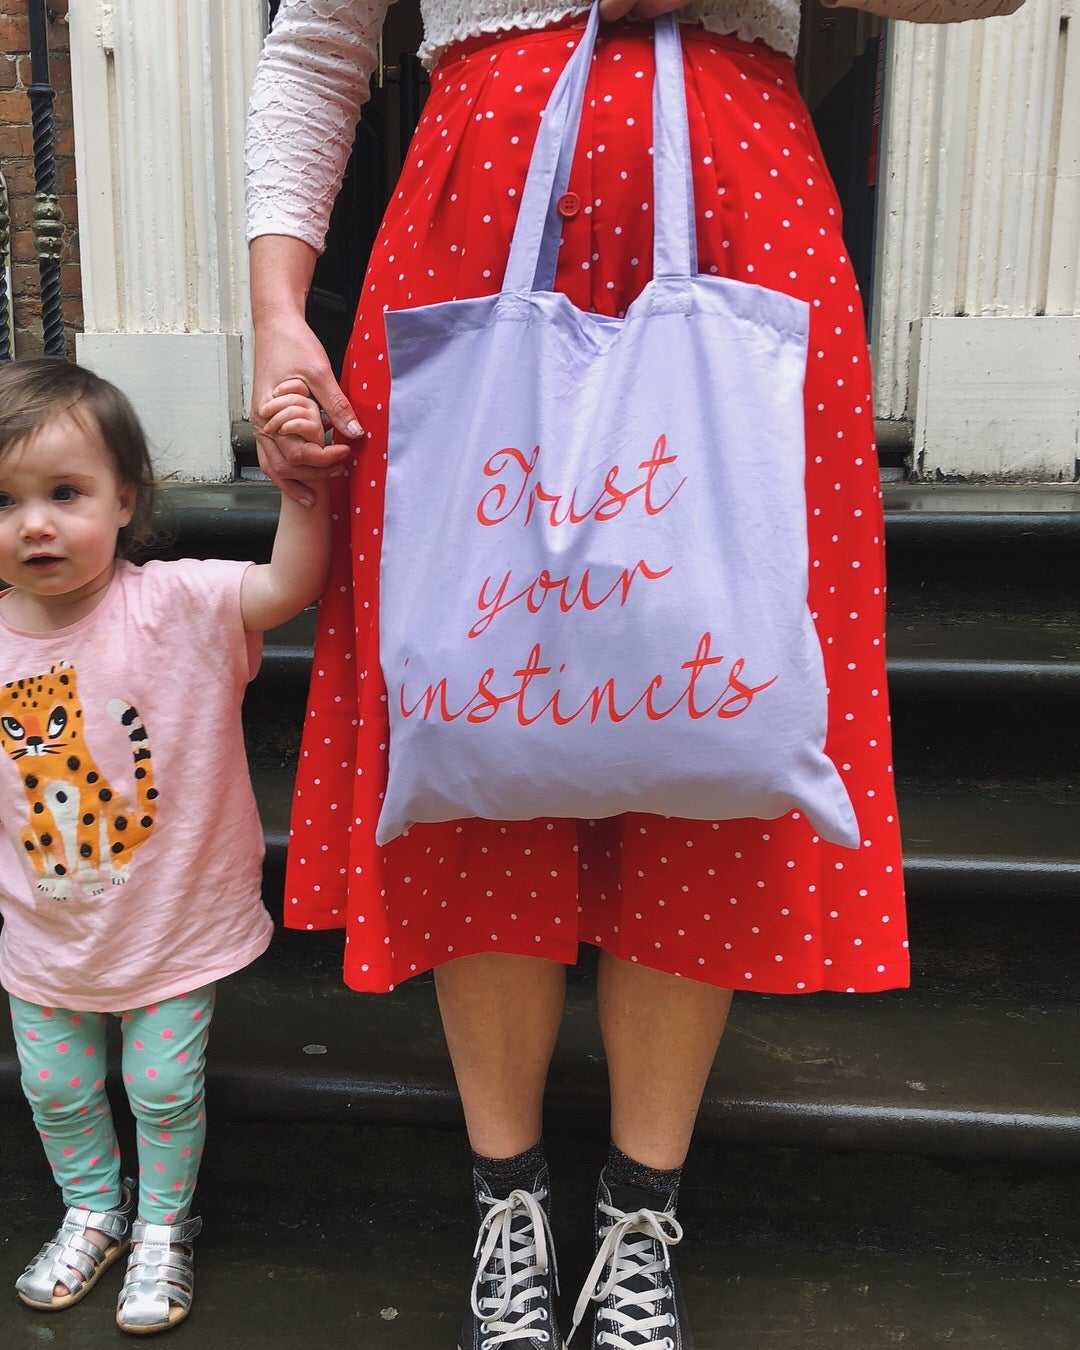 Image of Trust Your Instincts shopper tote